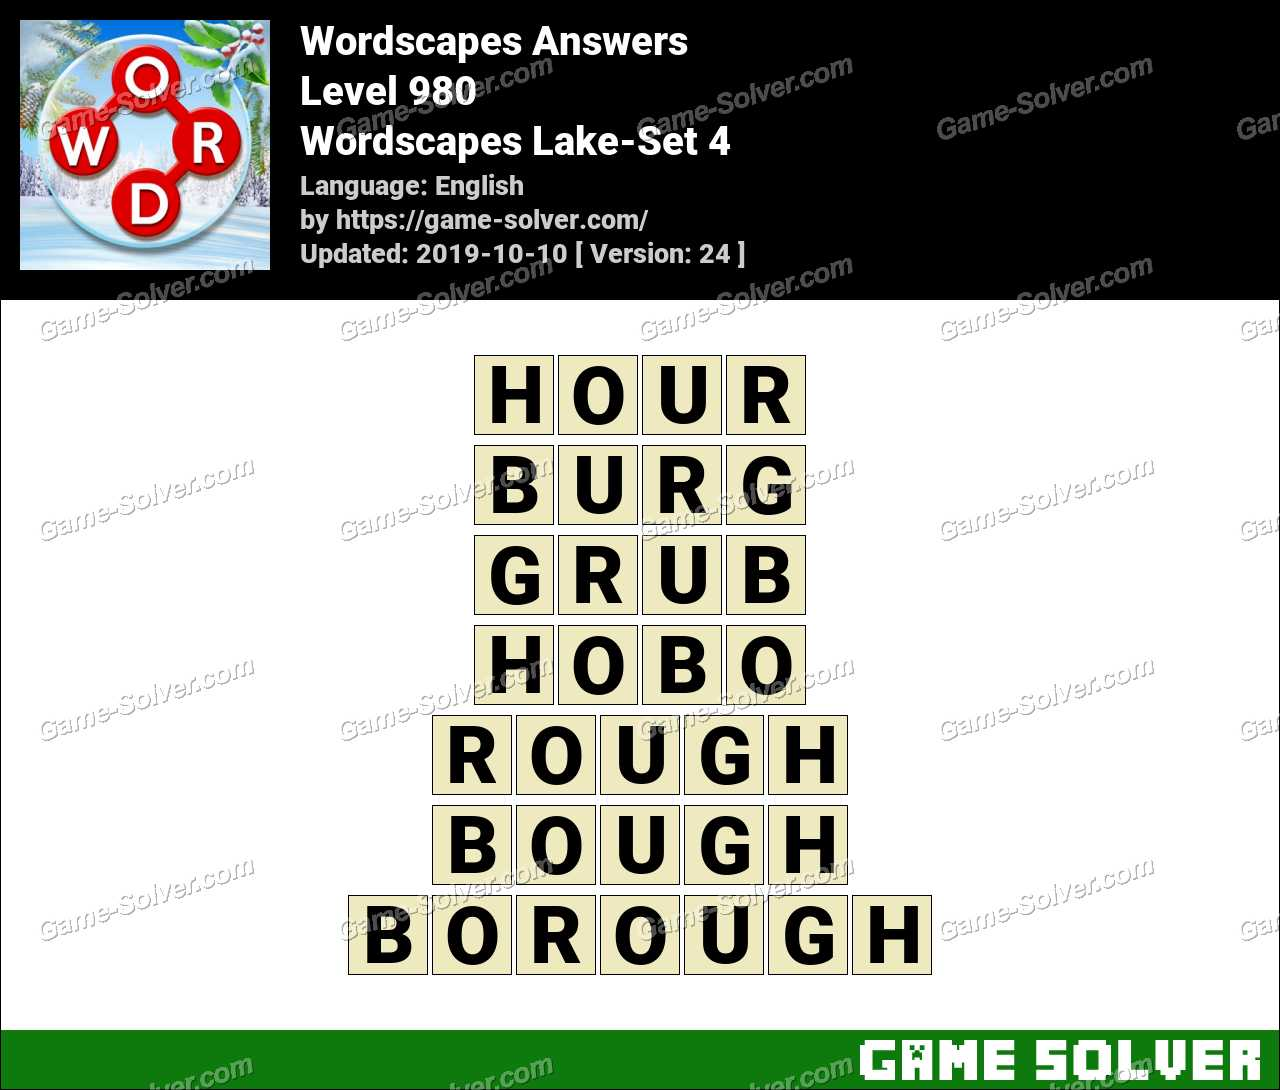 Wordscapes Lake-Set 4 Answers